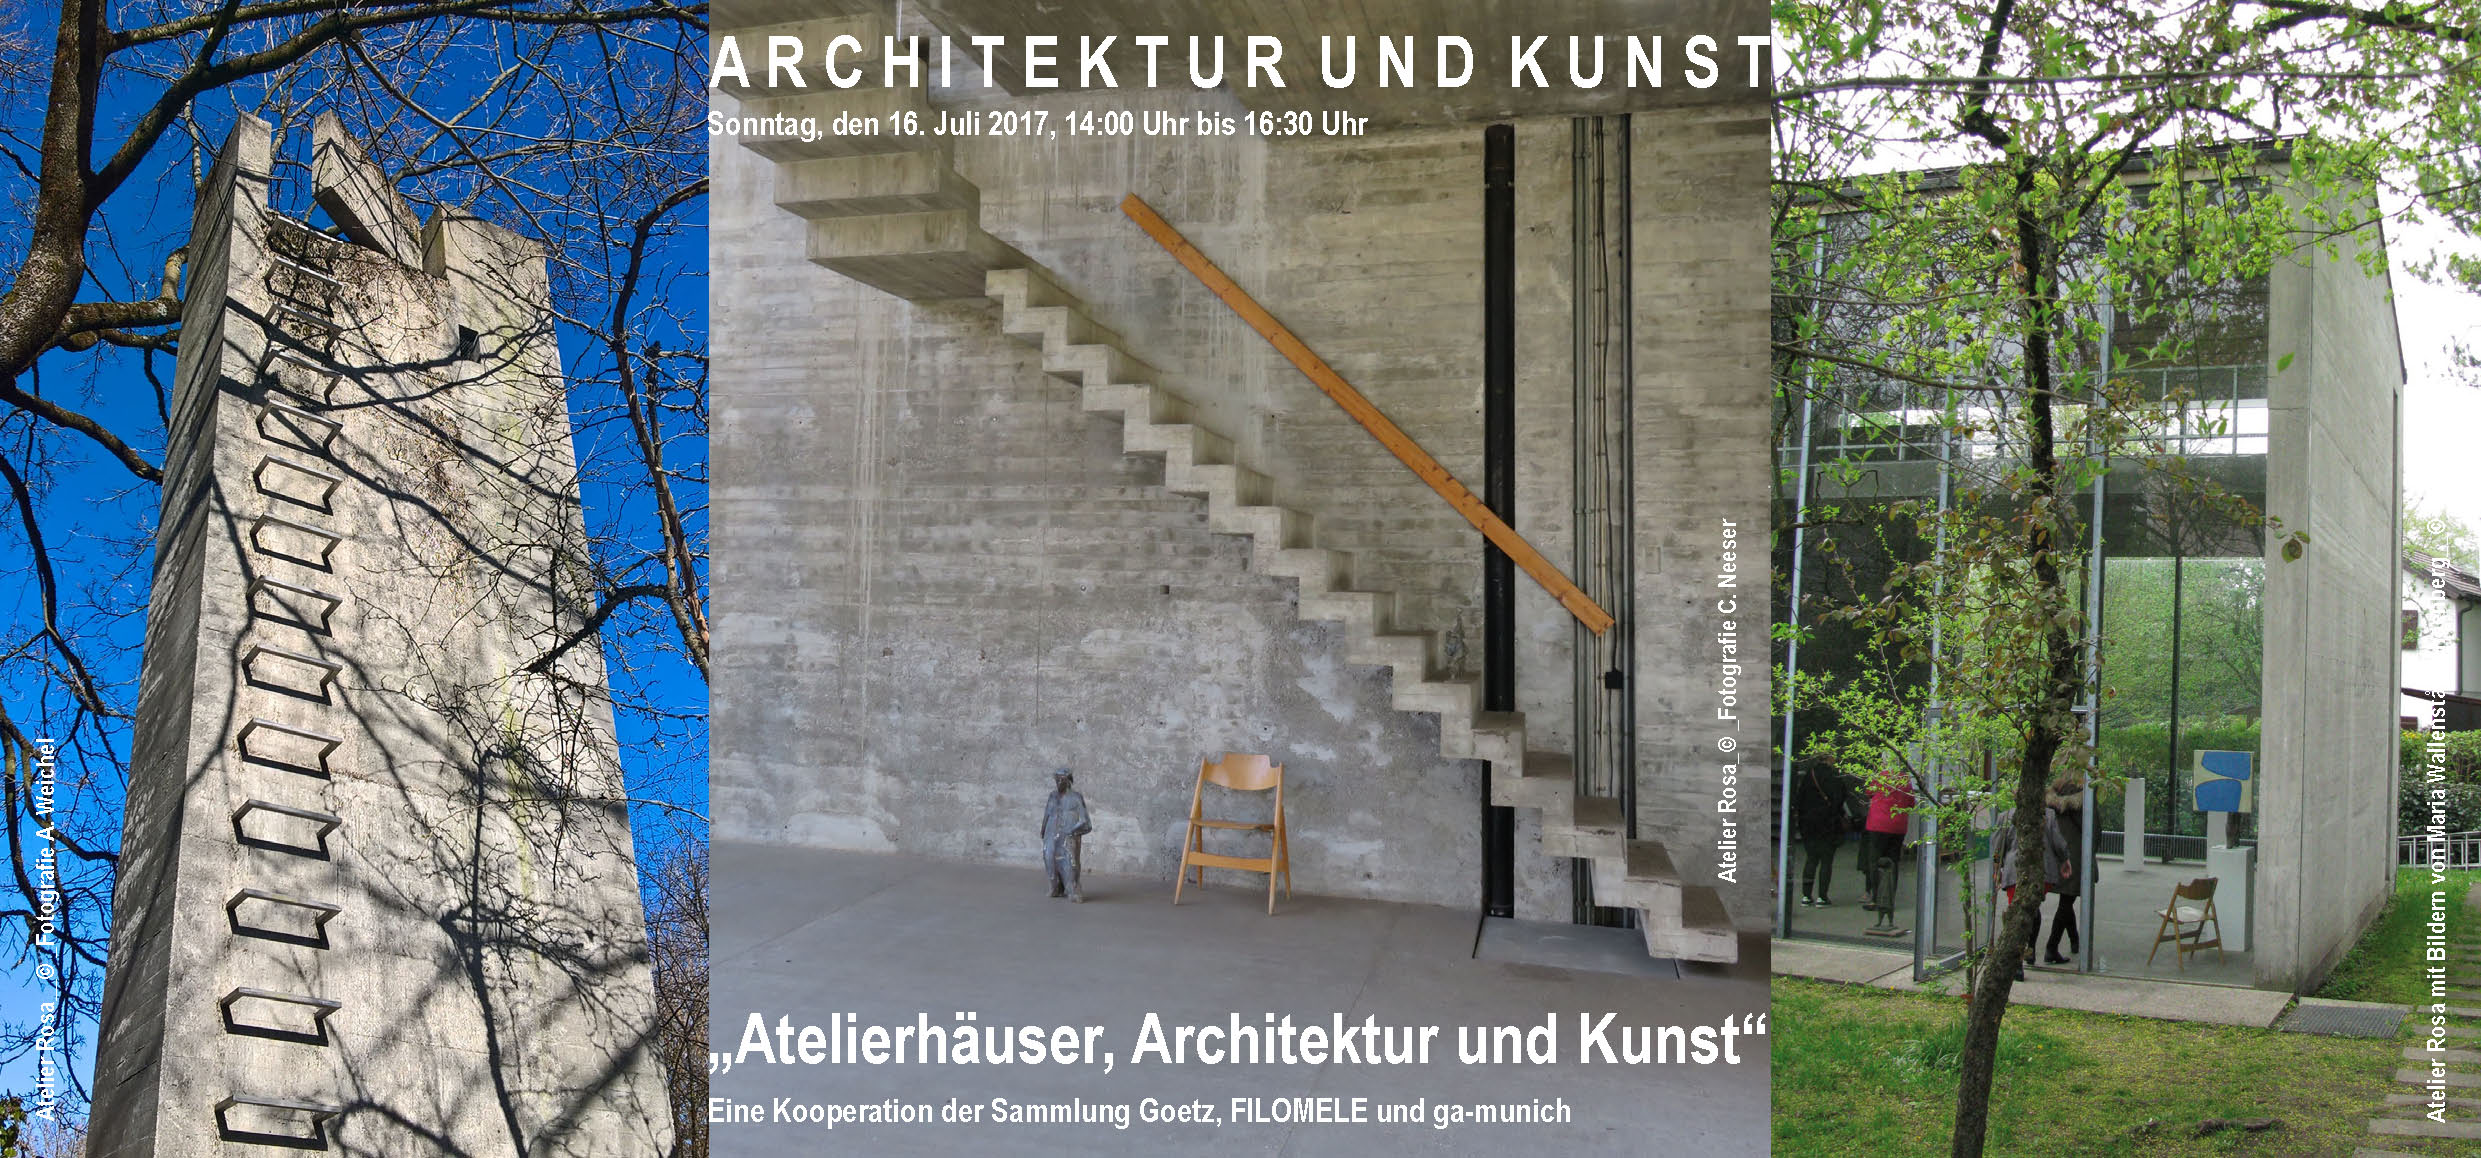 "The flyer advertising Guiding Architects Munich's tour on ""Architecture and Art"". Copyright: The authors of the images are identified in the flyer."